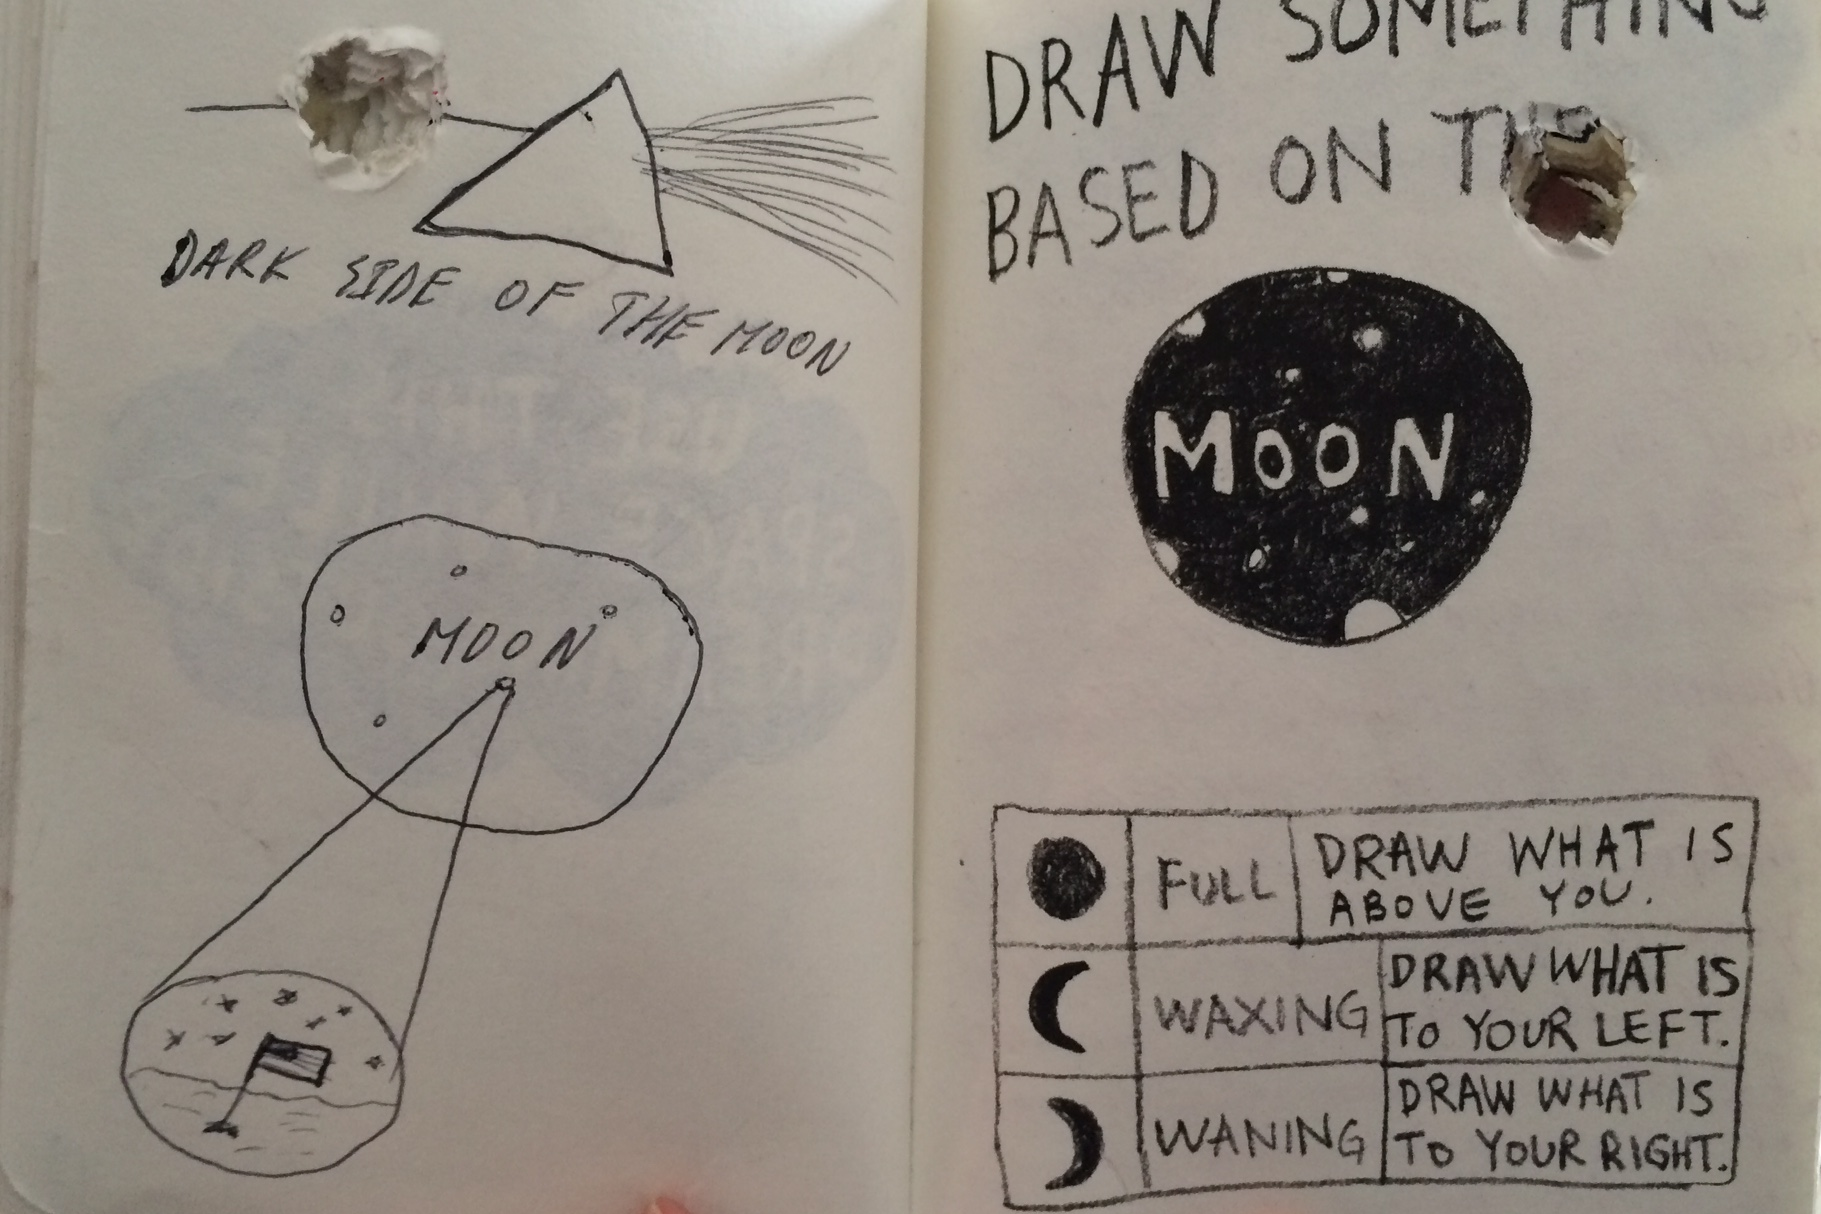 Draw something based on the moon.